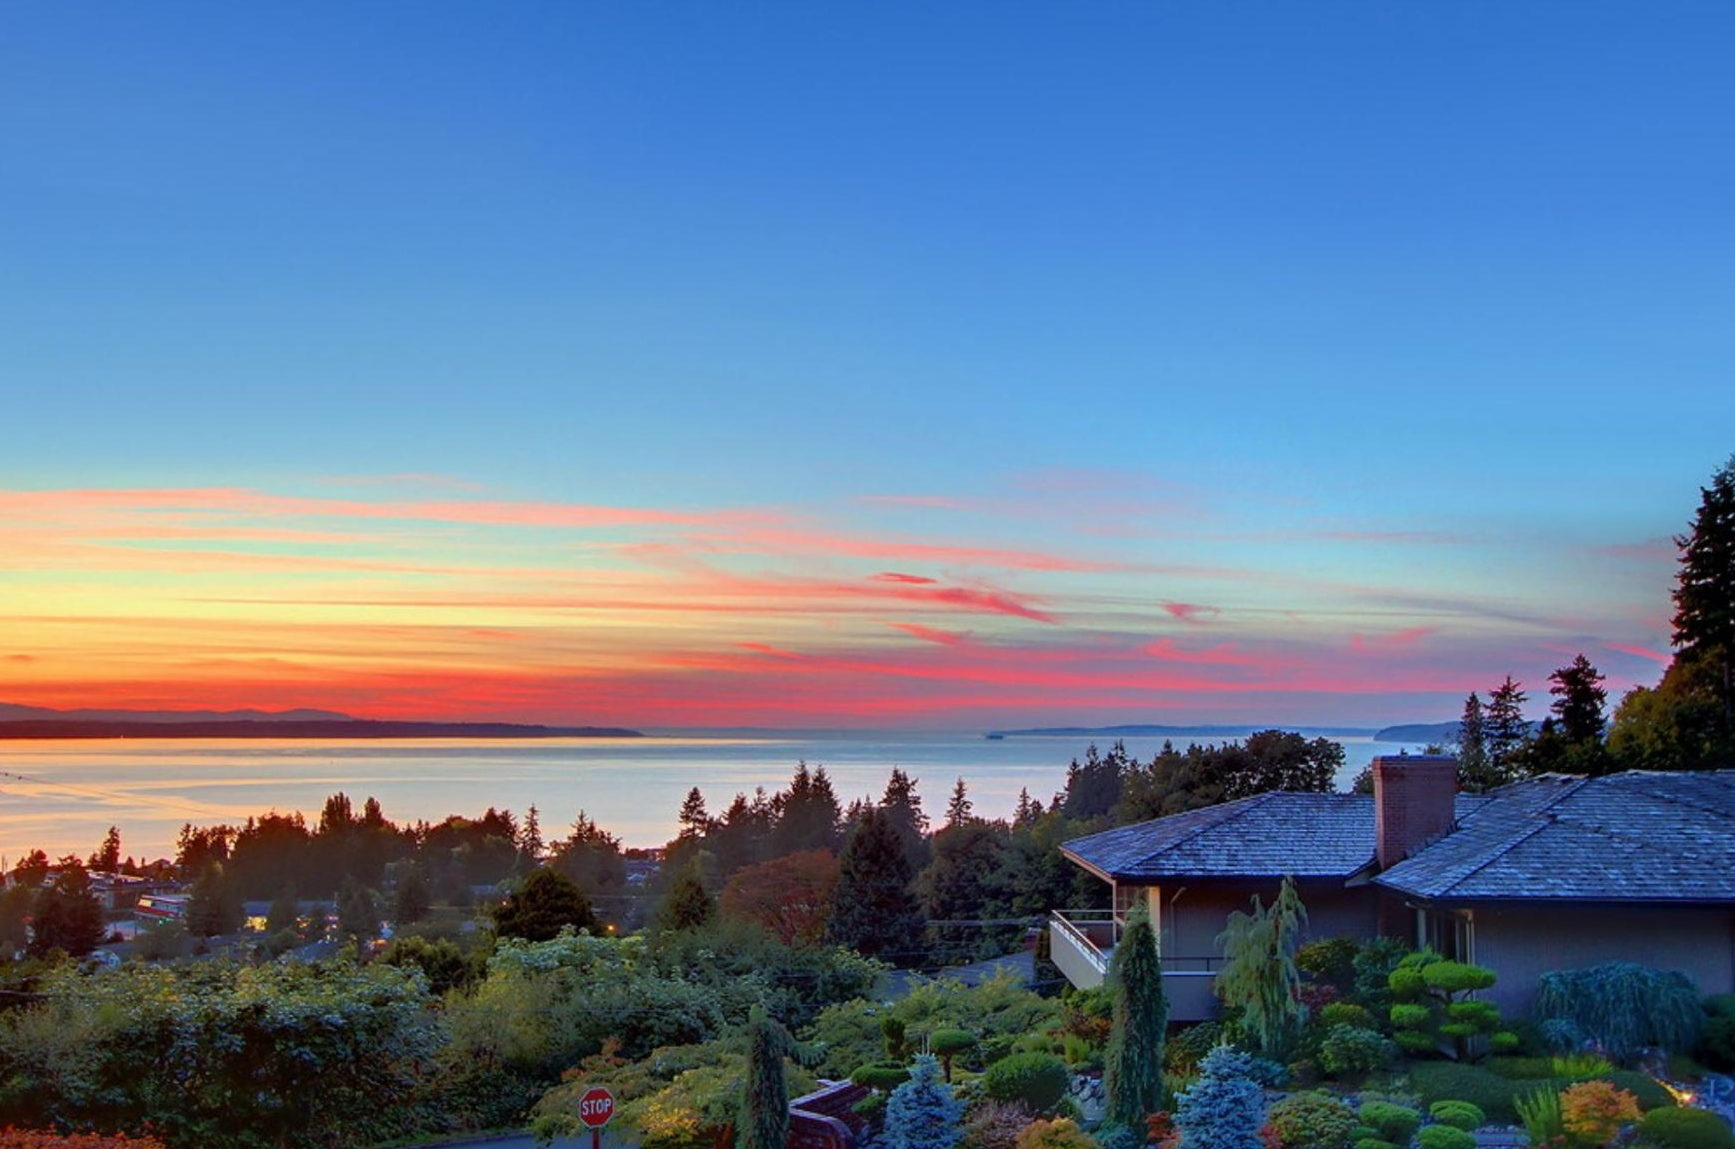 image of edmonds, wa at sunset looking toward the puget sound